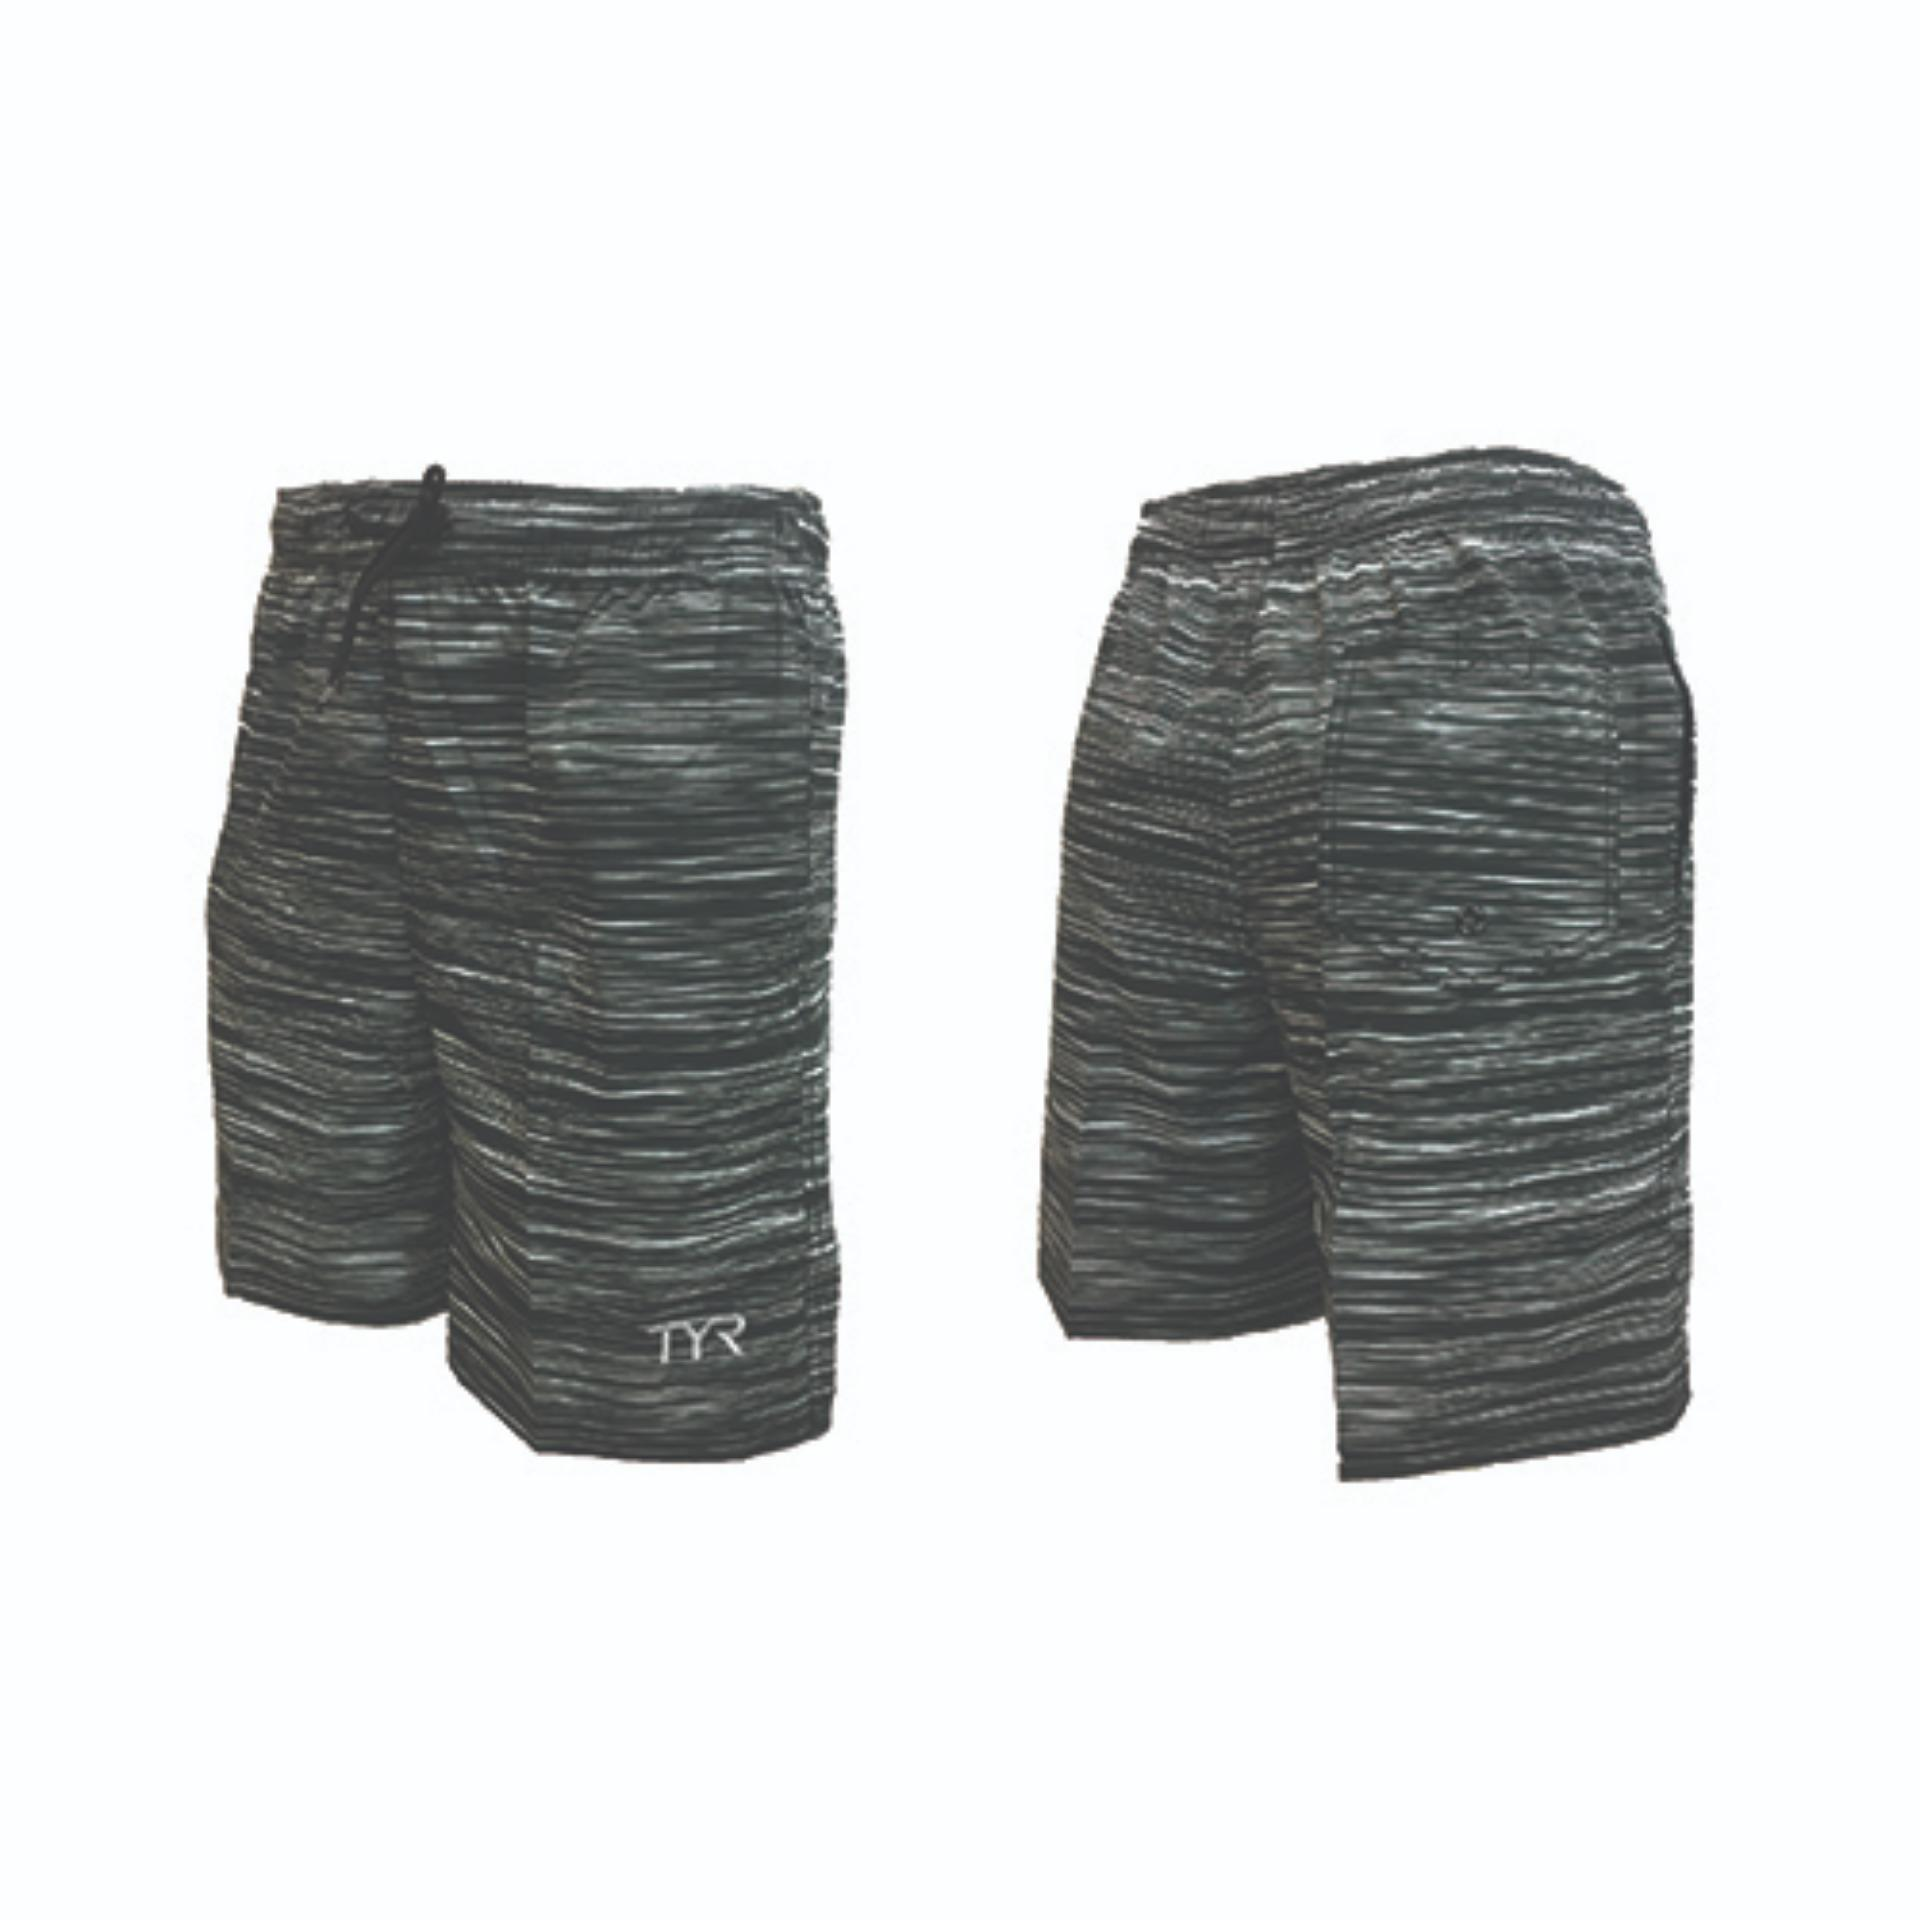 Tyr Marl Shorts Free Shipping